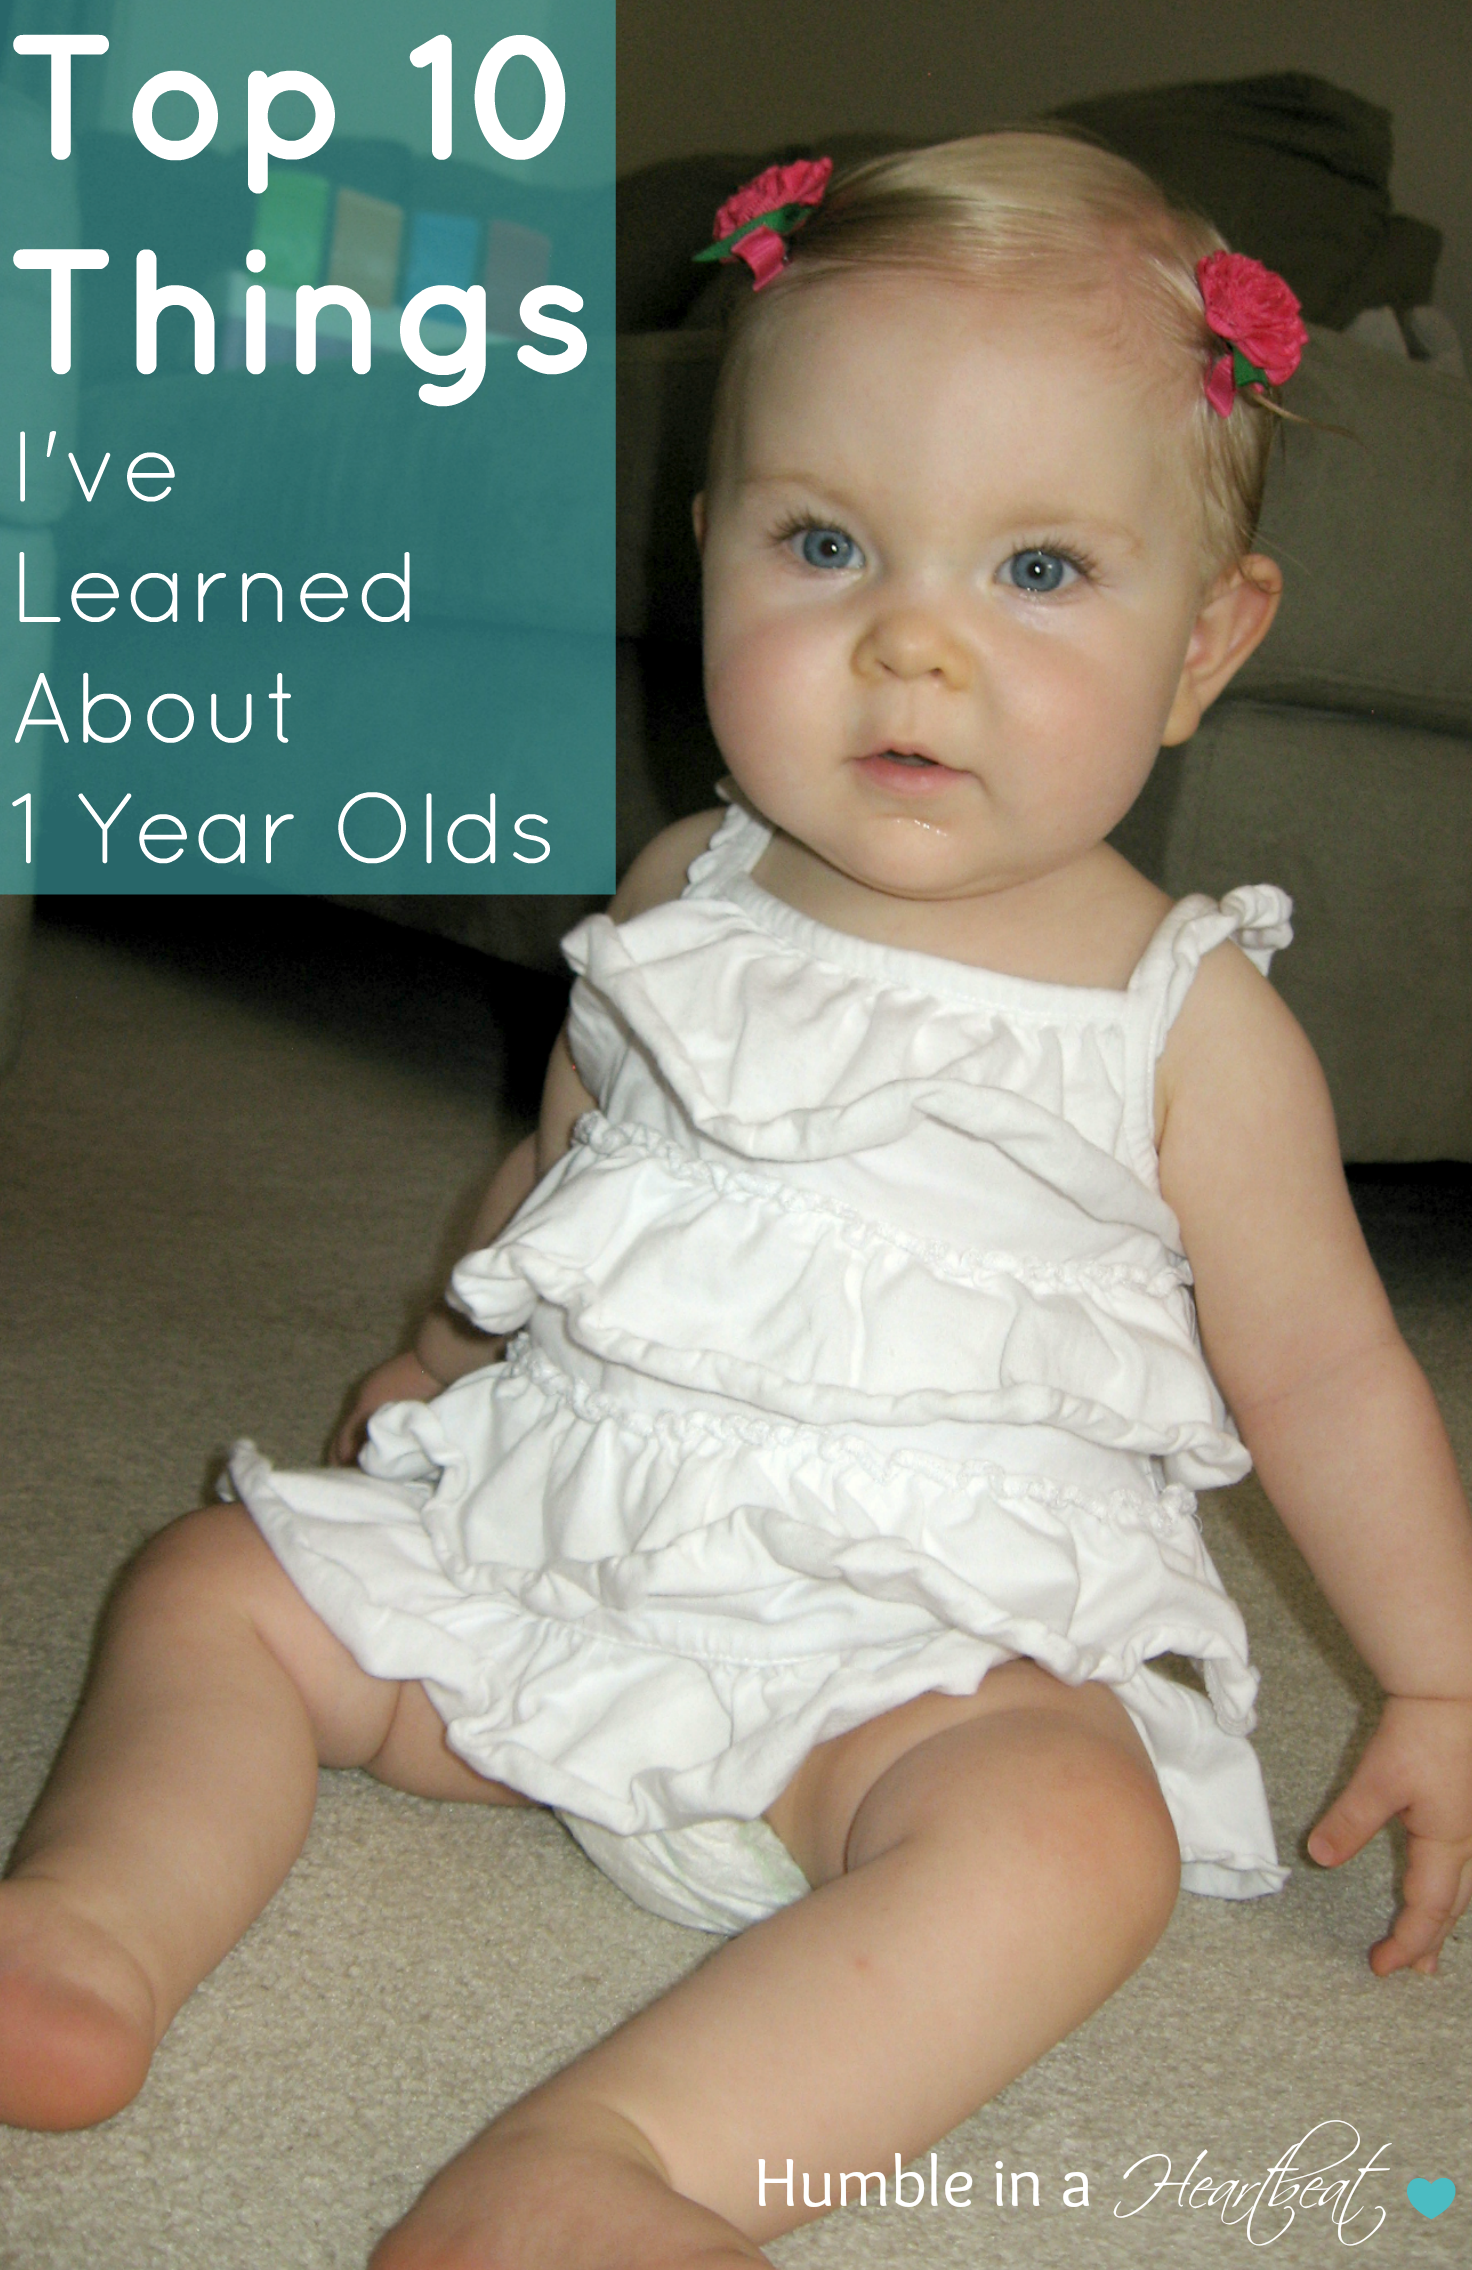 Top 10 Things I've Learned About 1 Year Olds